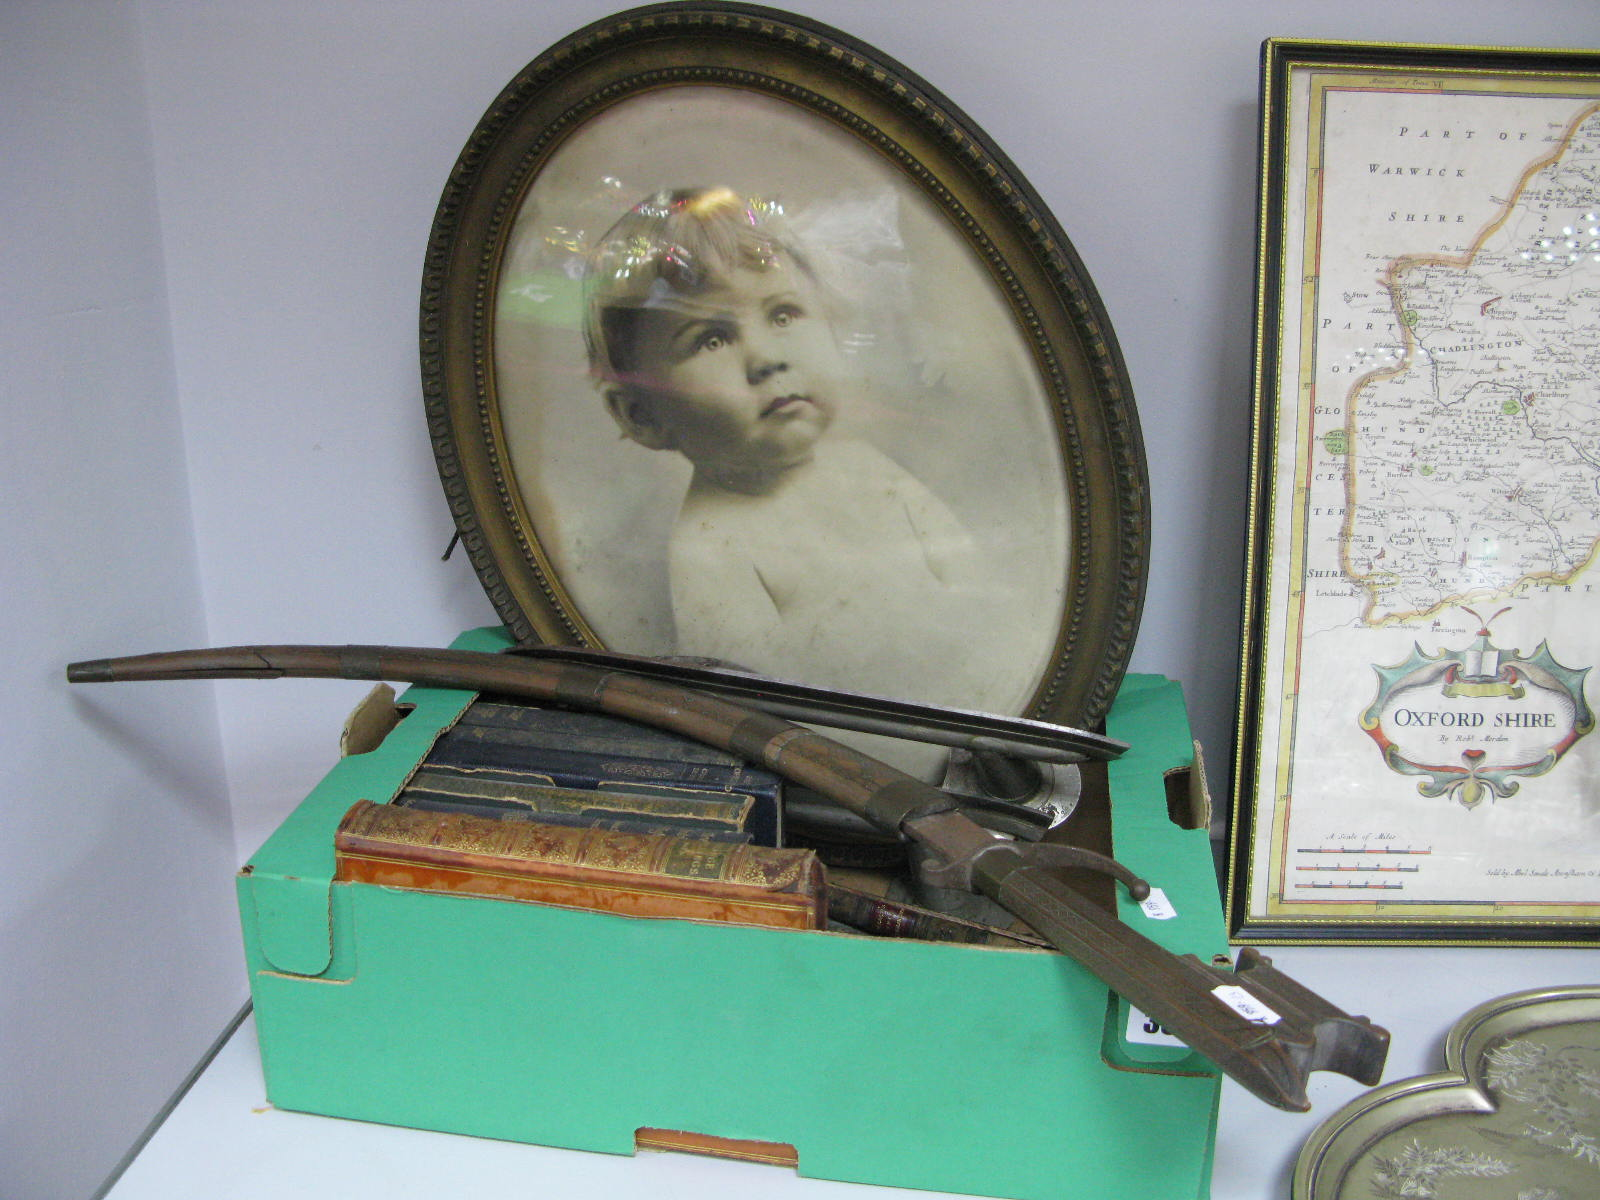 Lot 335 - Starr MFG. Co 'Rex' Ice Skates, books, oval photograph, Tulwar type knife with wire binding to